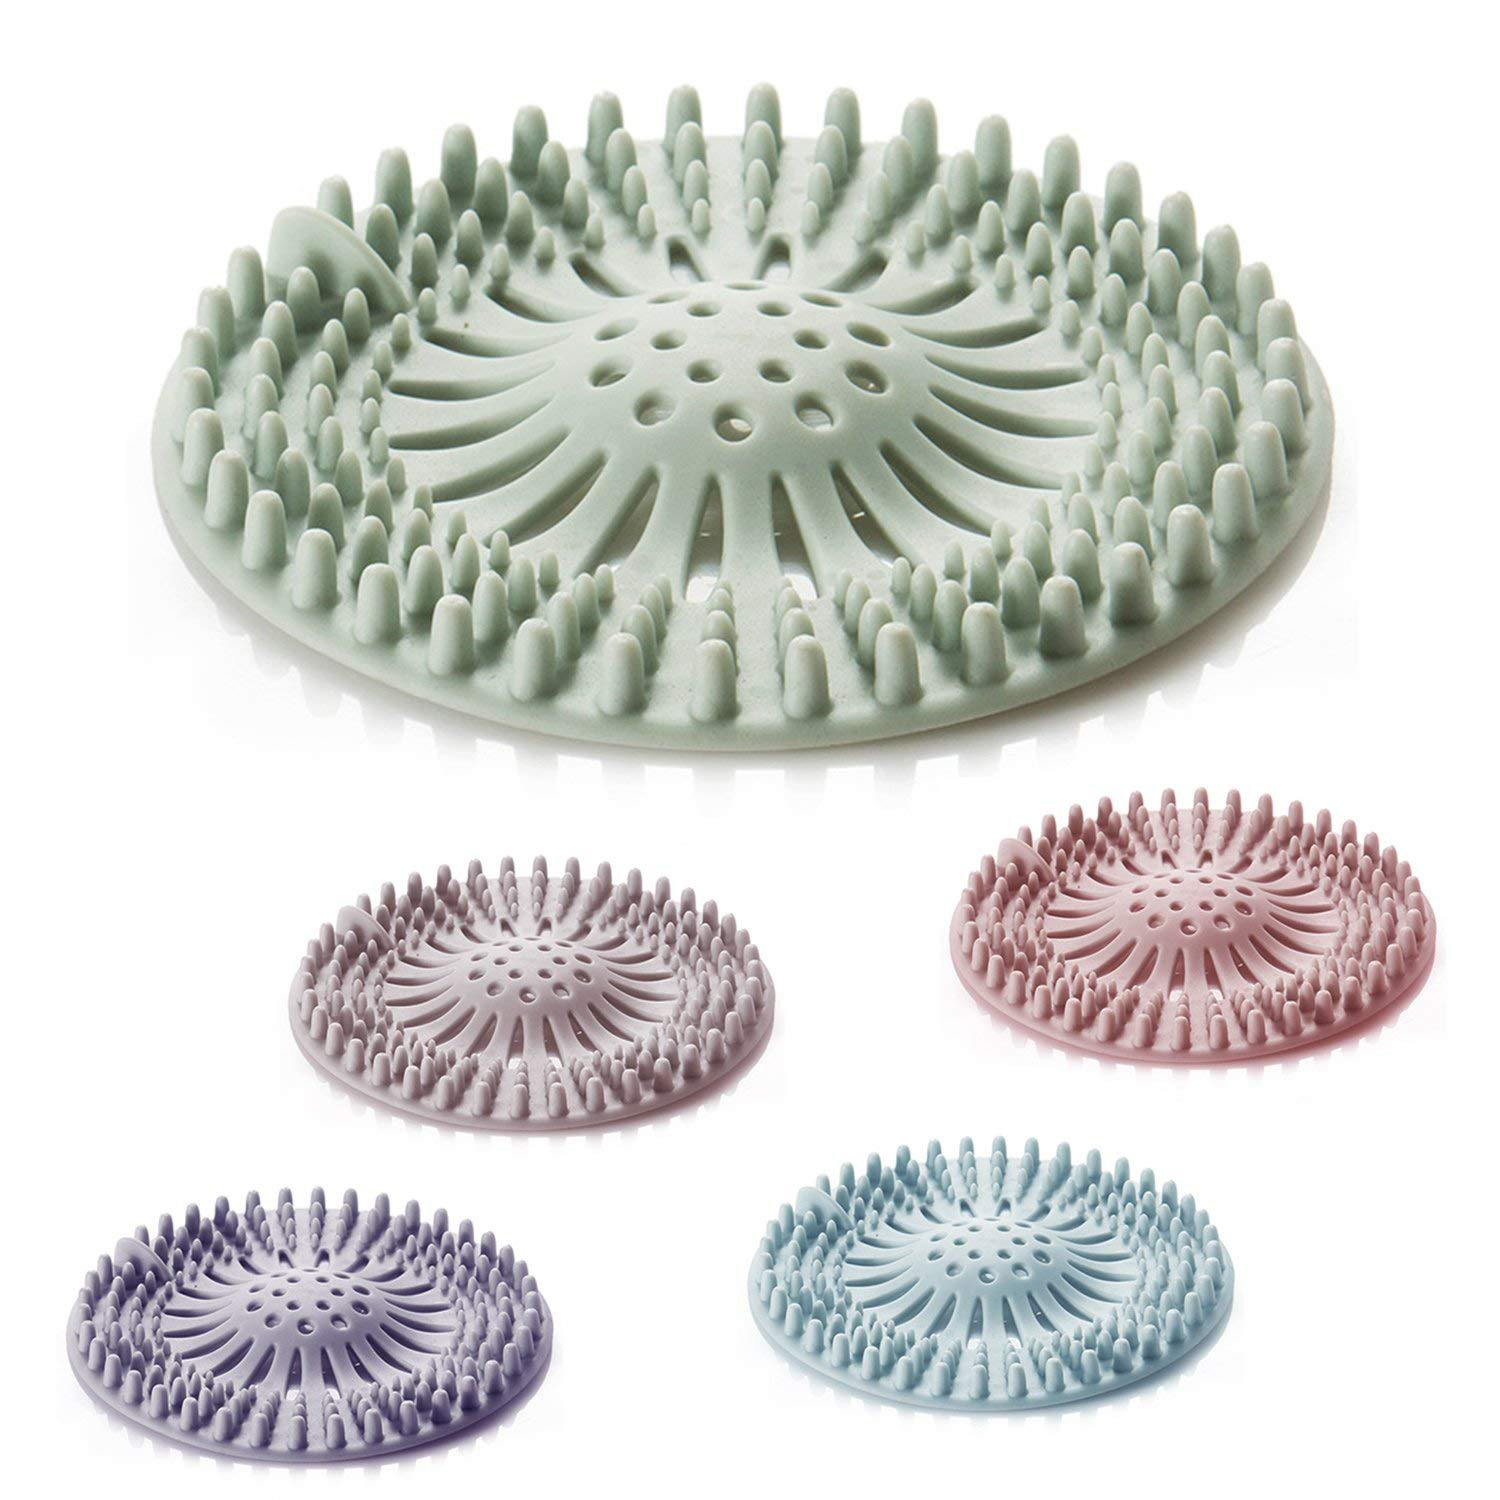 5 Pack Hair Catcher Hair Stopper Shower Drain Covers For Bathroom Bathtub And Kitchen - Rubber Sink Strainer Silicone Filter H